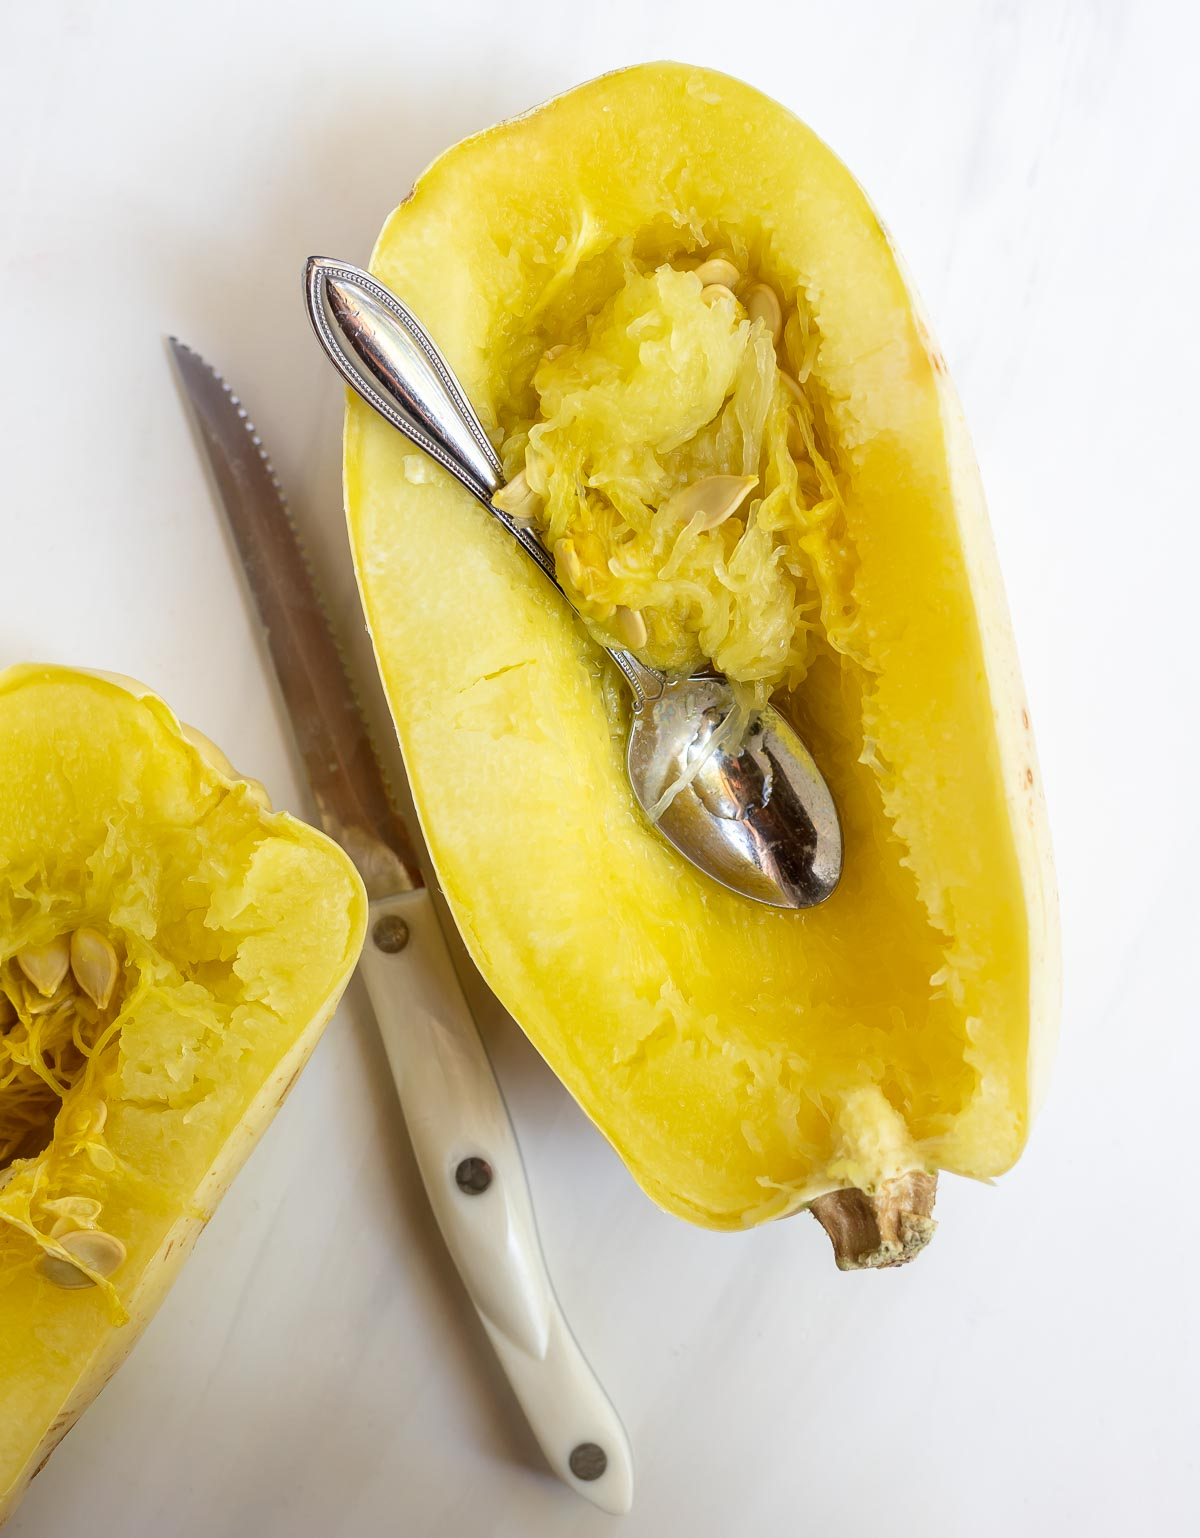 cooked spaghetti squash with silver spoon to scoop out seeds